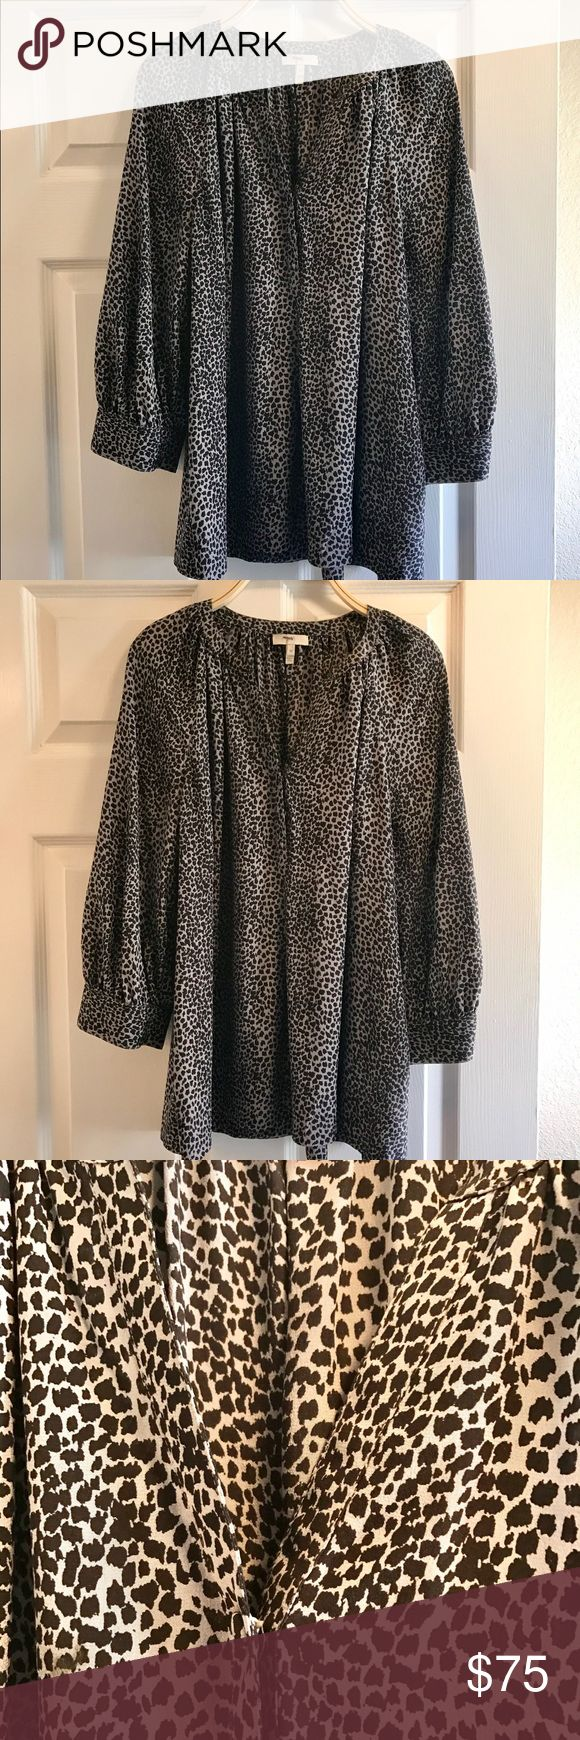 Joie Silk Animal Print Blouse Size: M Joie Silk Animal Print Blouse Size: M Like New. Gorgeous high-quality 100% silk blouse with fabric covered buttons on sleeves. Black and Grey, dress up with black trousers, dress down with denim. Bundle and Save! Make an offer! ✌ Joie Tops Blouses